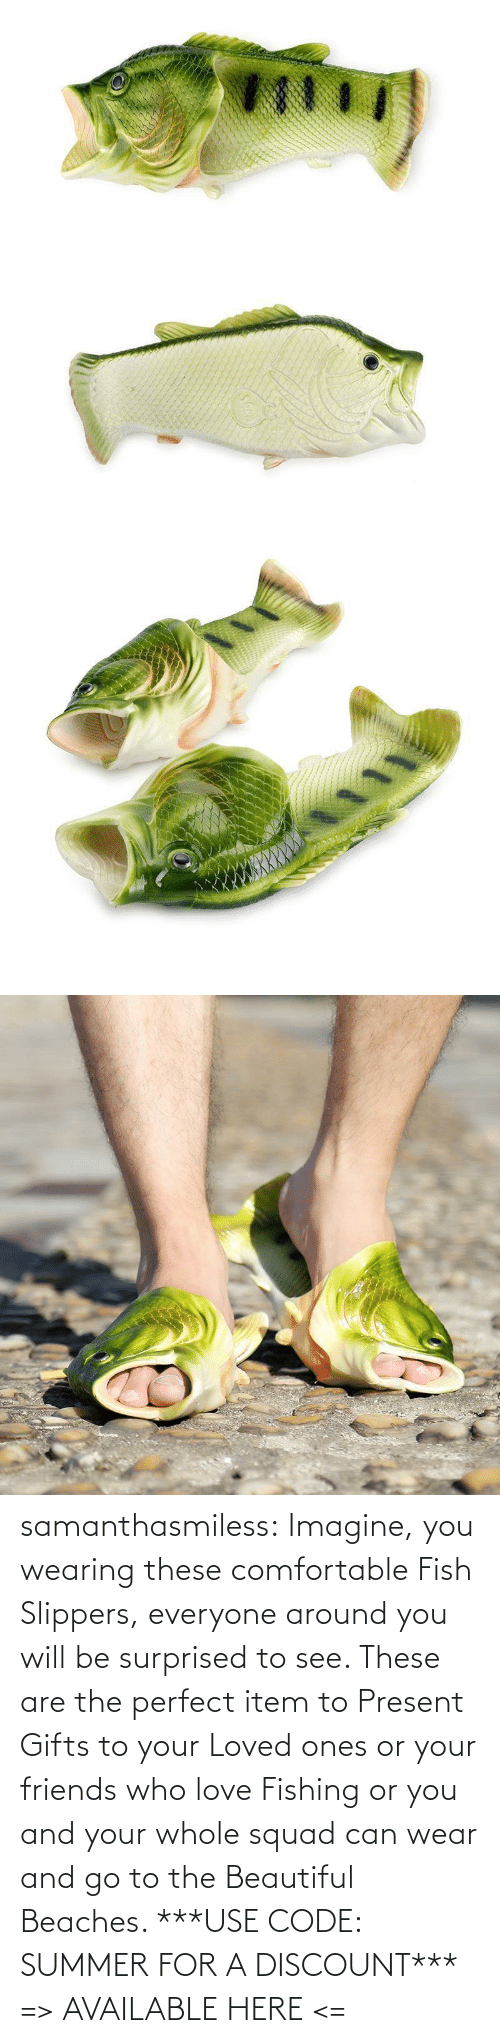 amp: samanthasmiless: Imagine, you wearing these comfortable Fish Slippers, everyone around you will be surprised to see. These are the perfect item to Present Gifts to your Loved ones or your friends who love Fishing or you and your whole squad can wear and go to the Beautiful Beaches.  ***USE CODE: SUMMER FOR A DISCOUNT*** => AVAILABLE HERE <=